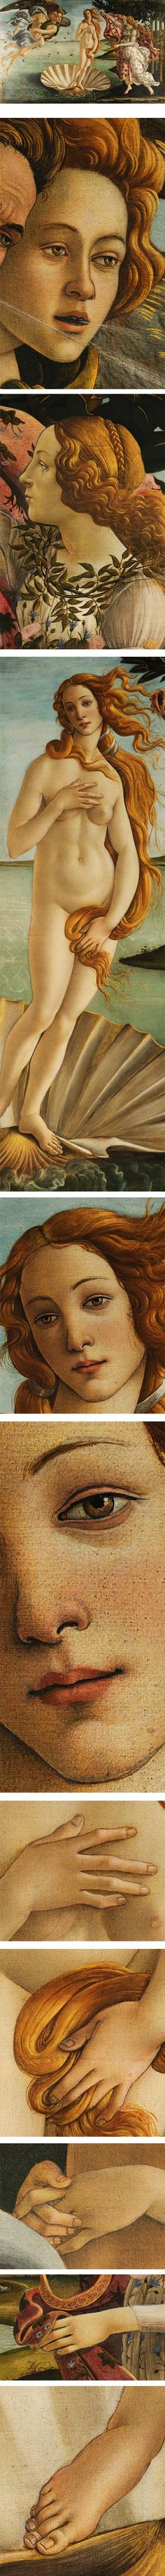 Botticelli's Birth of Venus. Uffizzi Gallery, Florence, Italy.